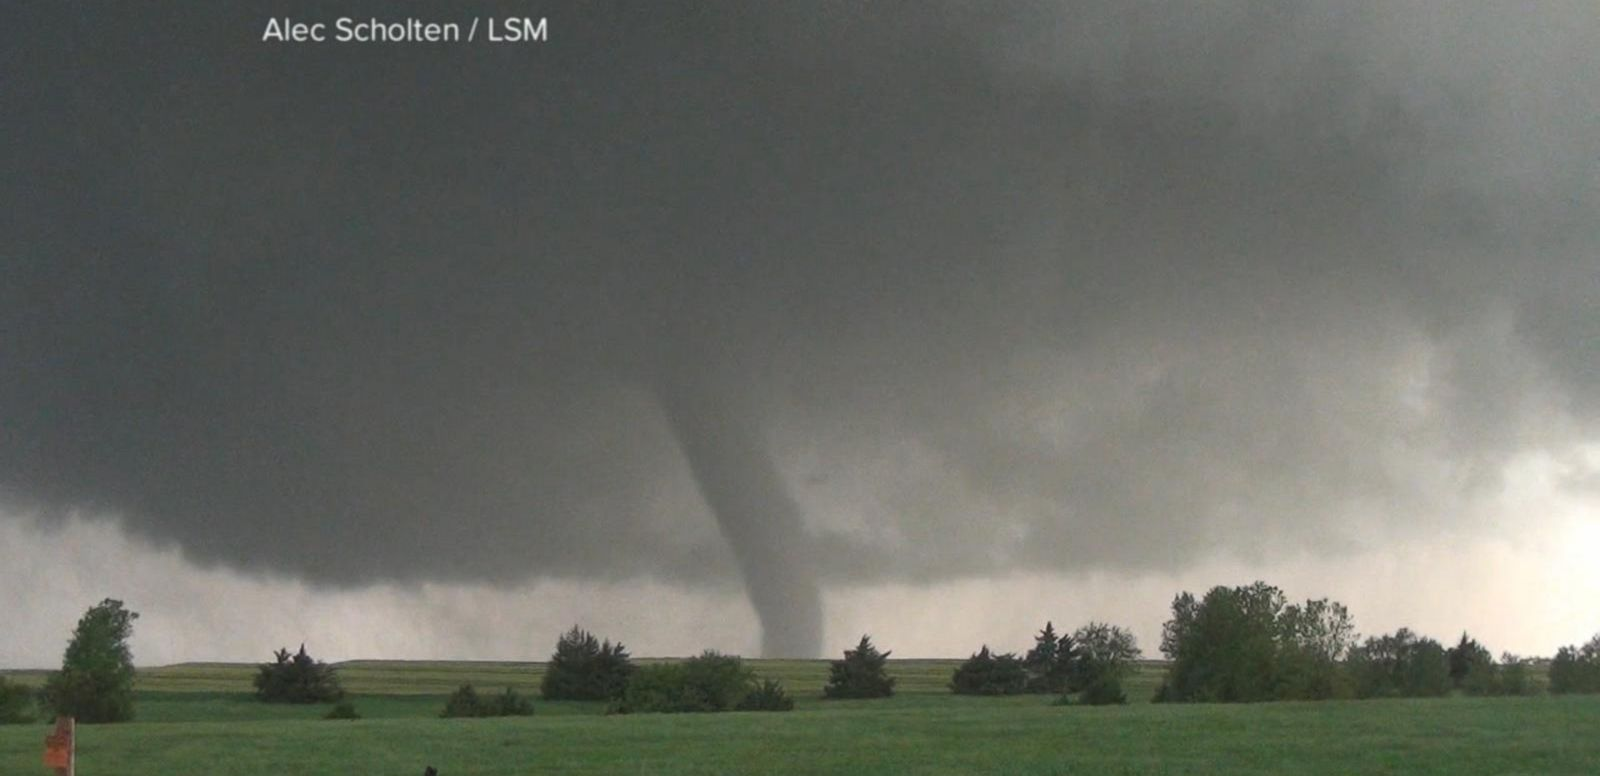 VIDEO: Tornadoes Continue to Wreak Havoc Across the Great Plains